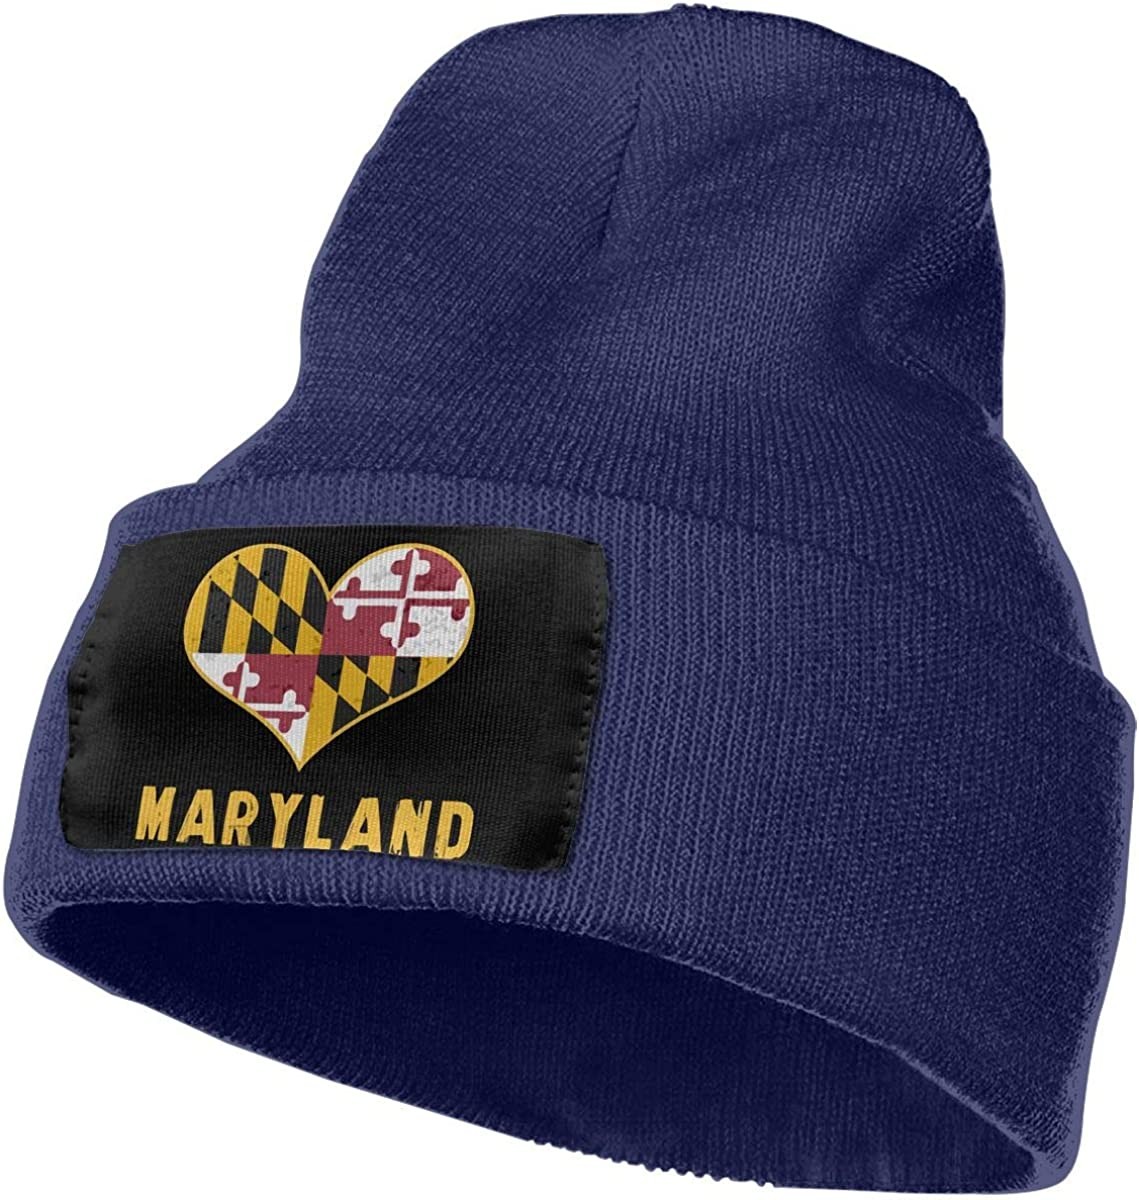 Maryland State Flag Thick Beanie Hat WHOO93@Y Mens and Womens 100/% Acrylic Knitting Hat Cap